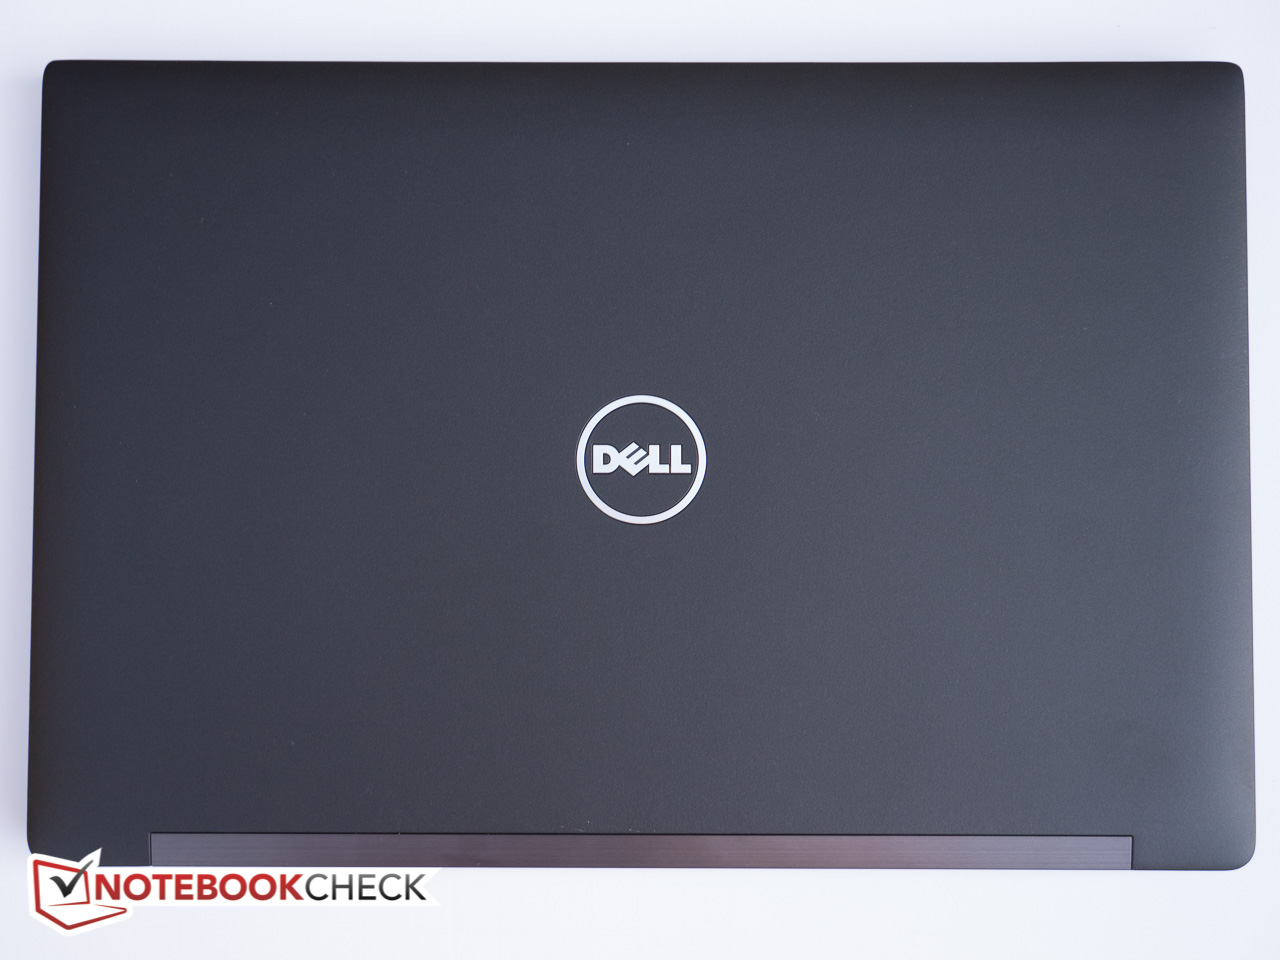 Dell Latitude 7480 (7600U, FHD) Laptop Review - NotebookCheck net